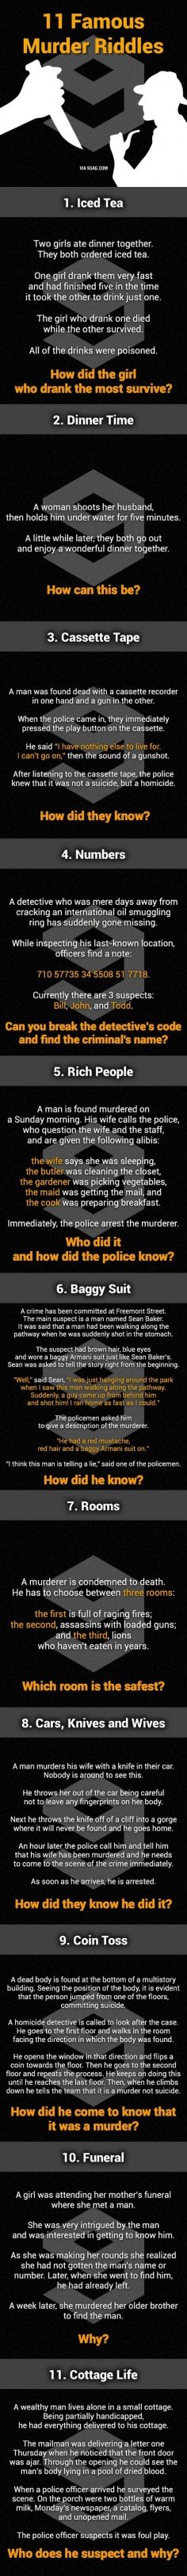 """11 Murder Mystery Riddles. Can You Solve Them All? 1. The poison was in the ice. 2. She shot her husband with a camera and then developed the photo. 3. If the man shot himself while he was recording, how did he rewind the cassette tape? 4. Bill is the suspect, if read upside down the numbers read """"Bill is boss. He sells oil."""" 5. There is no mail on Sundays. 6. How can the murderer shoot him in the stomach if he came up behind the man? 7. The room with the lions because they would have now die"""